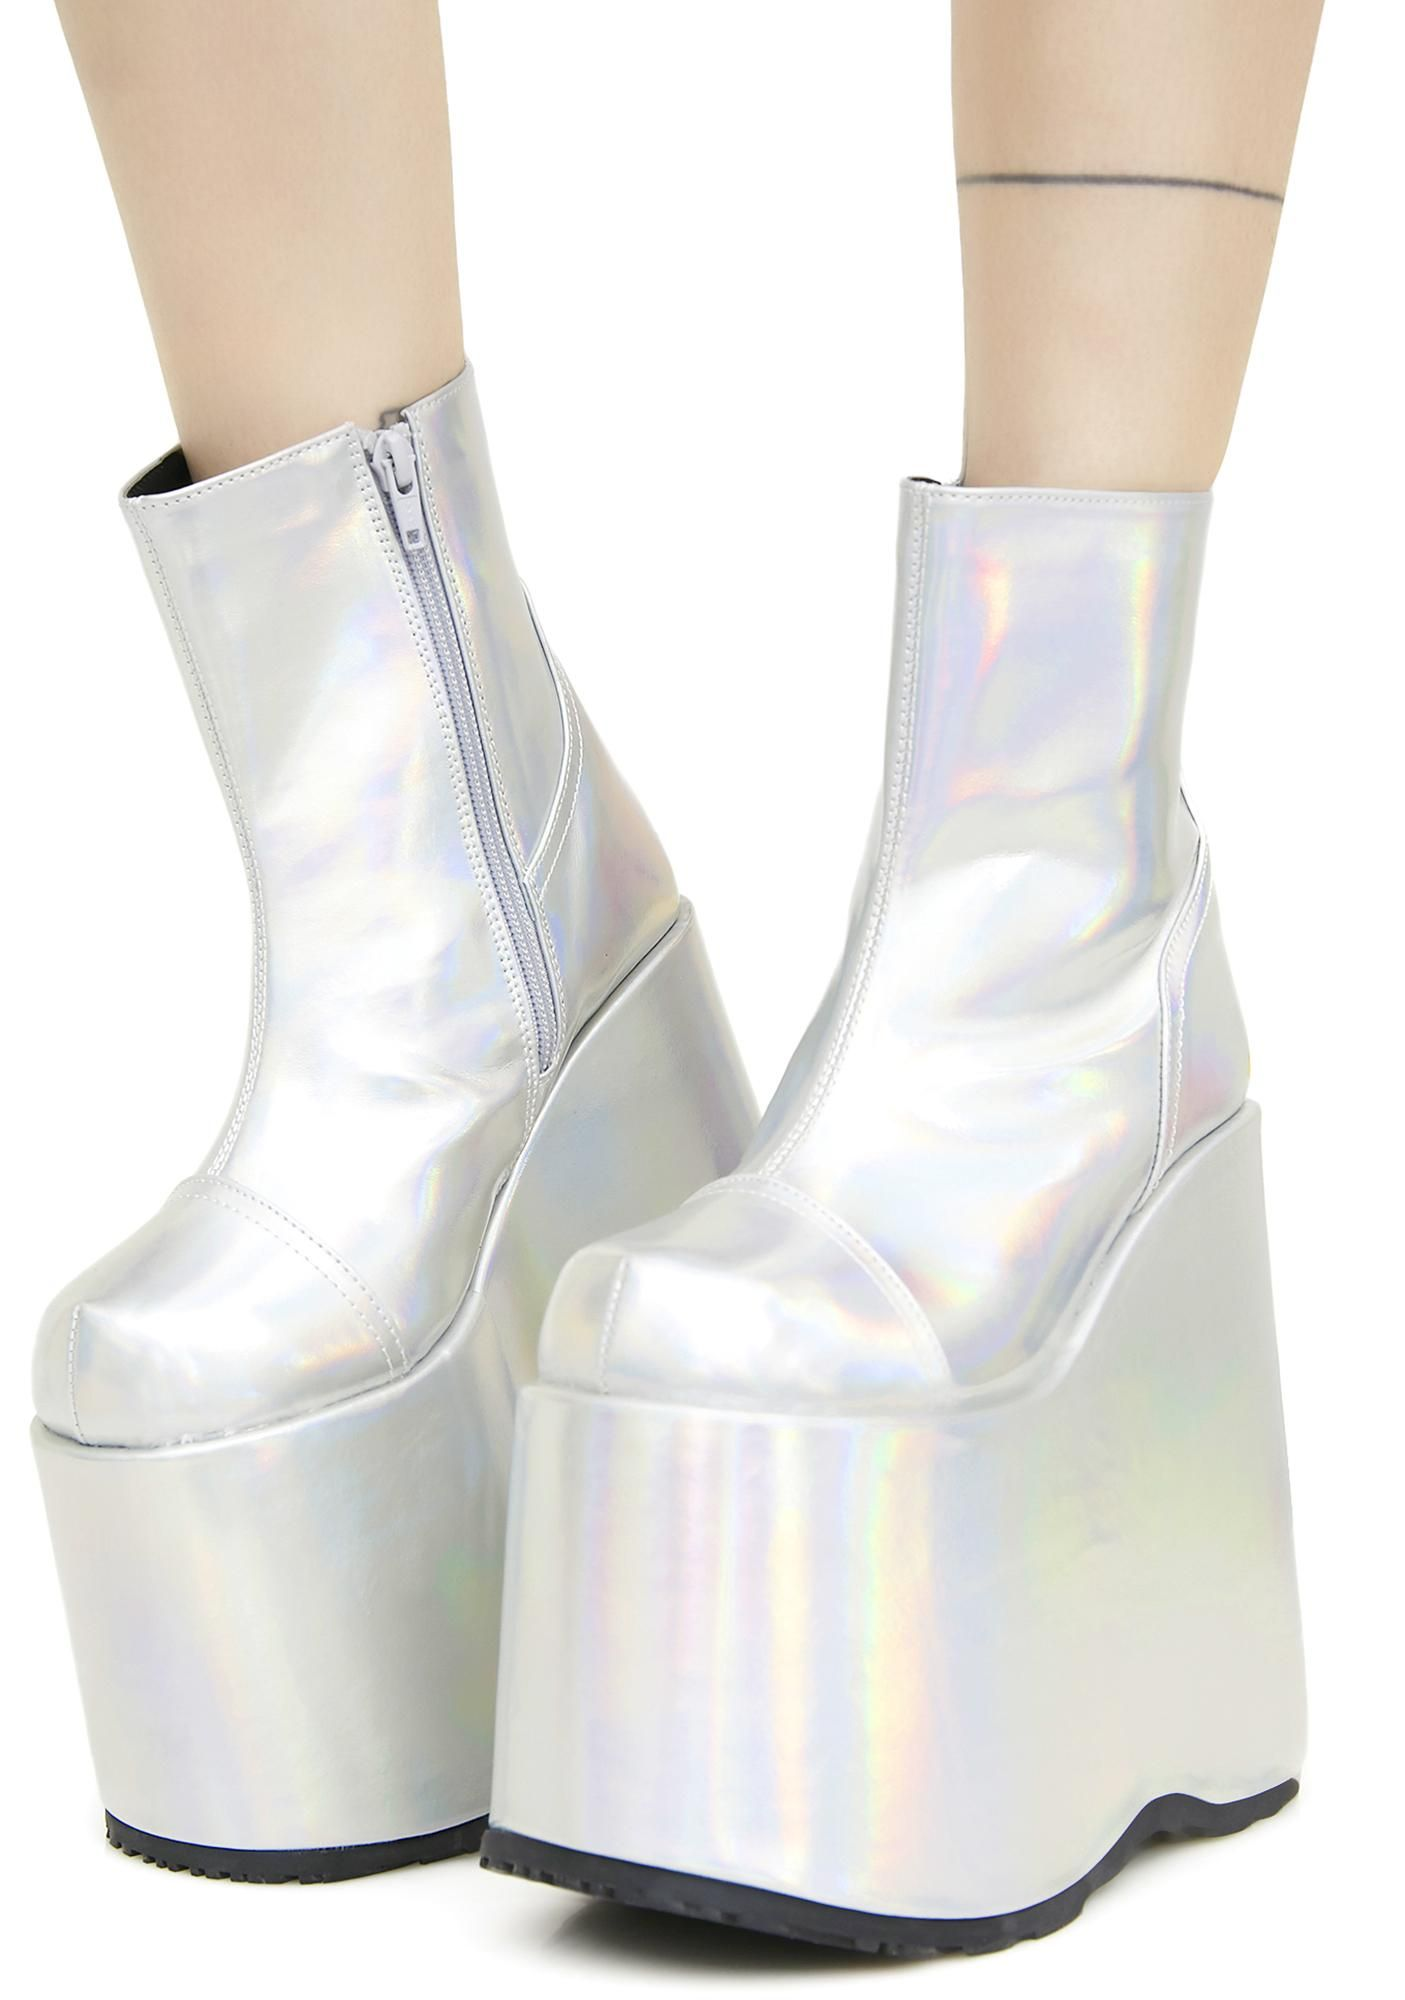 56aba23ab034 Demonia Cyberdelia Hologram Platform Boots is there a mission to the moon  later